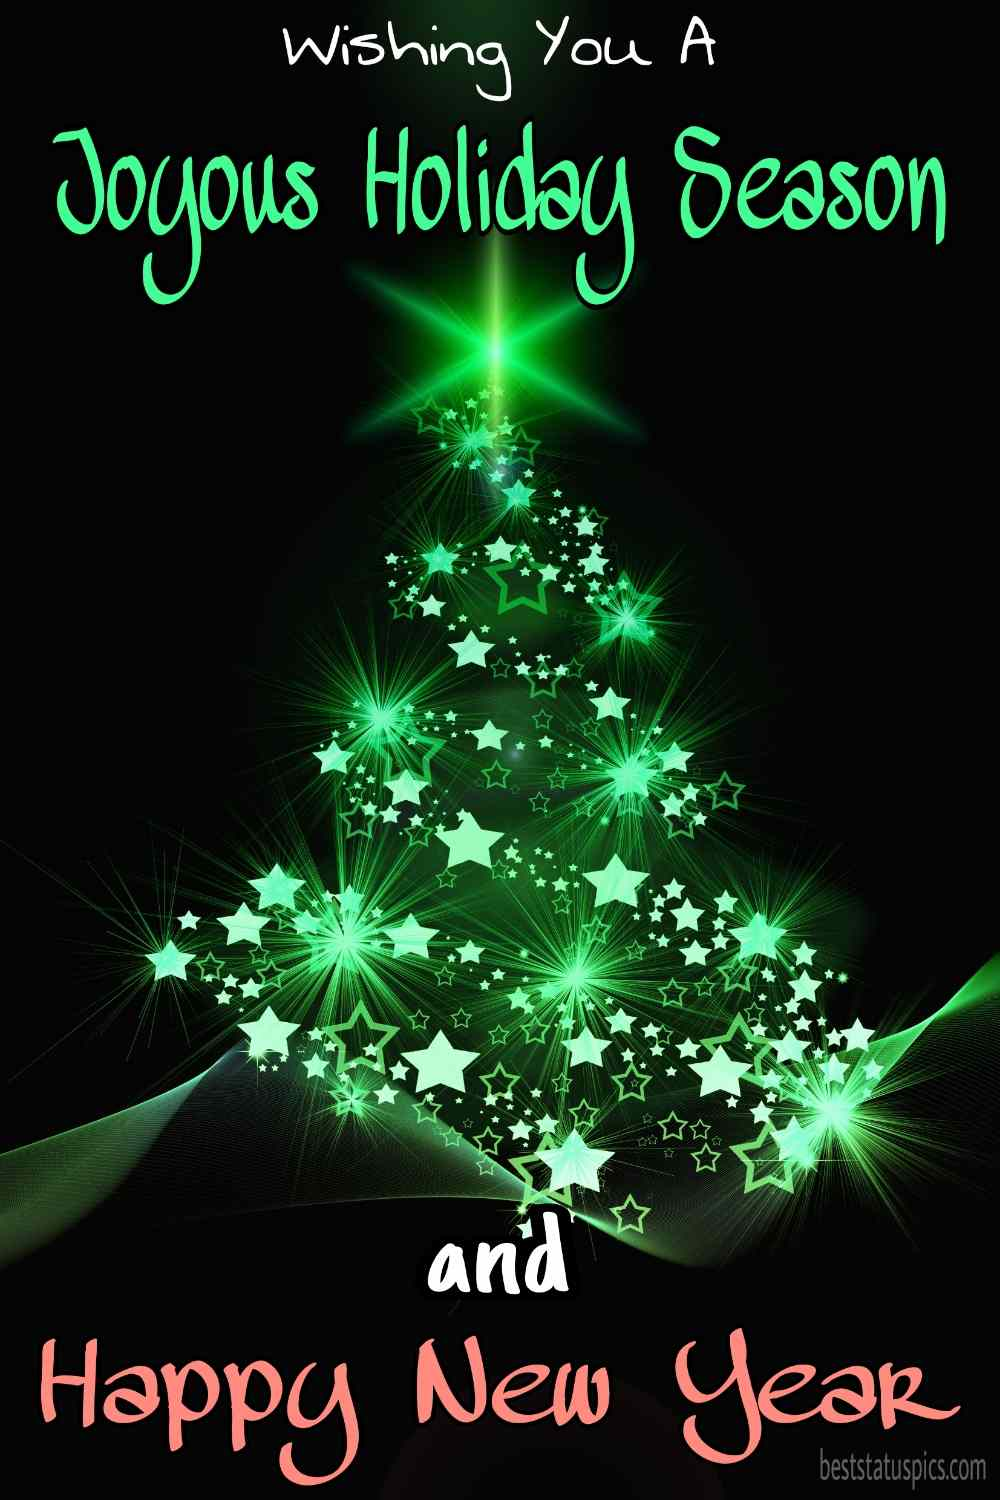 Happy Holidays and Happy New Year 2022 picture HD with Christmas tree for Instagram story